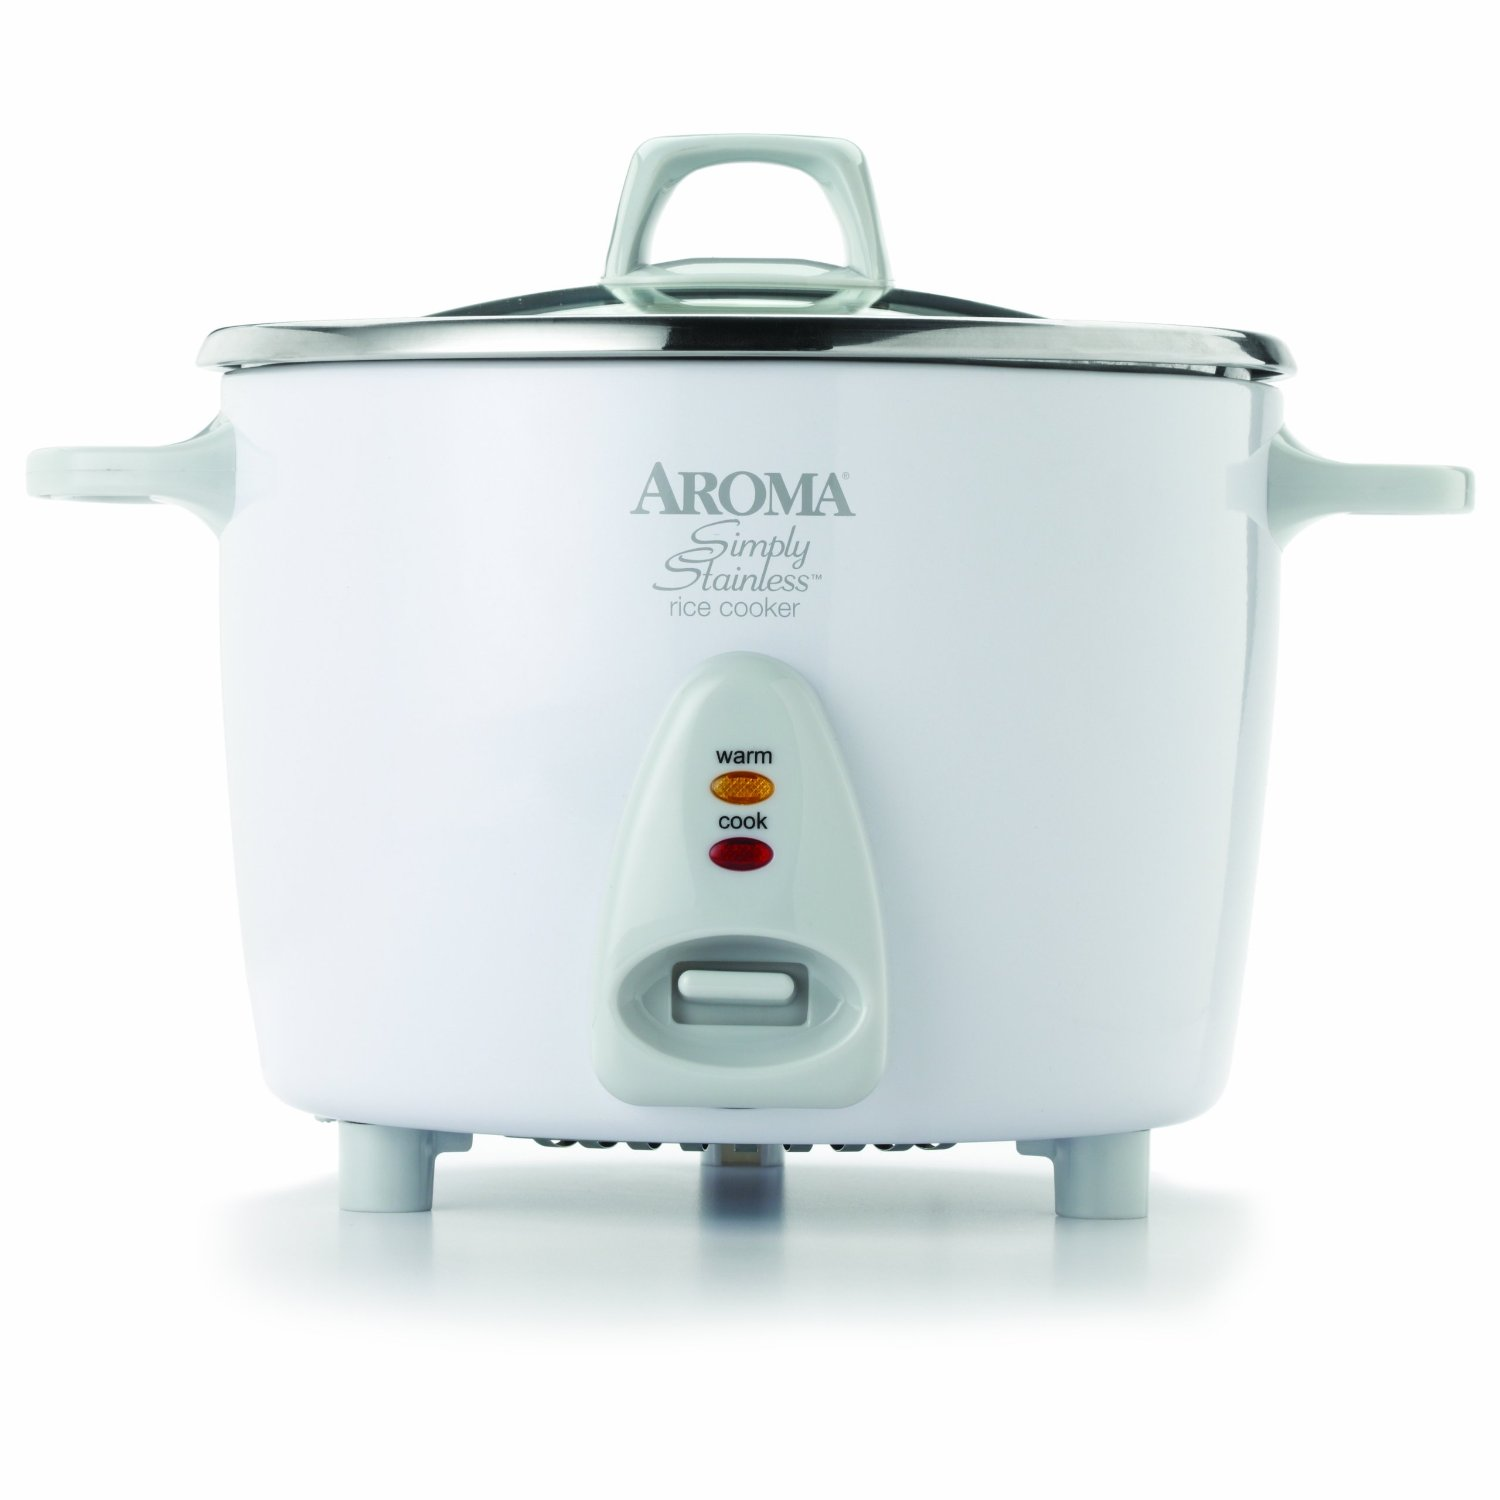 Aroma Simply Stainless Rice Cooker (View 8 of 10)